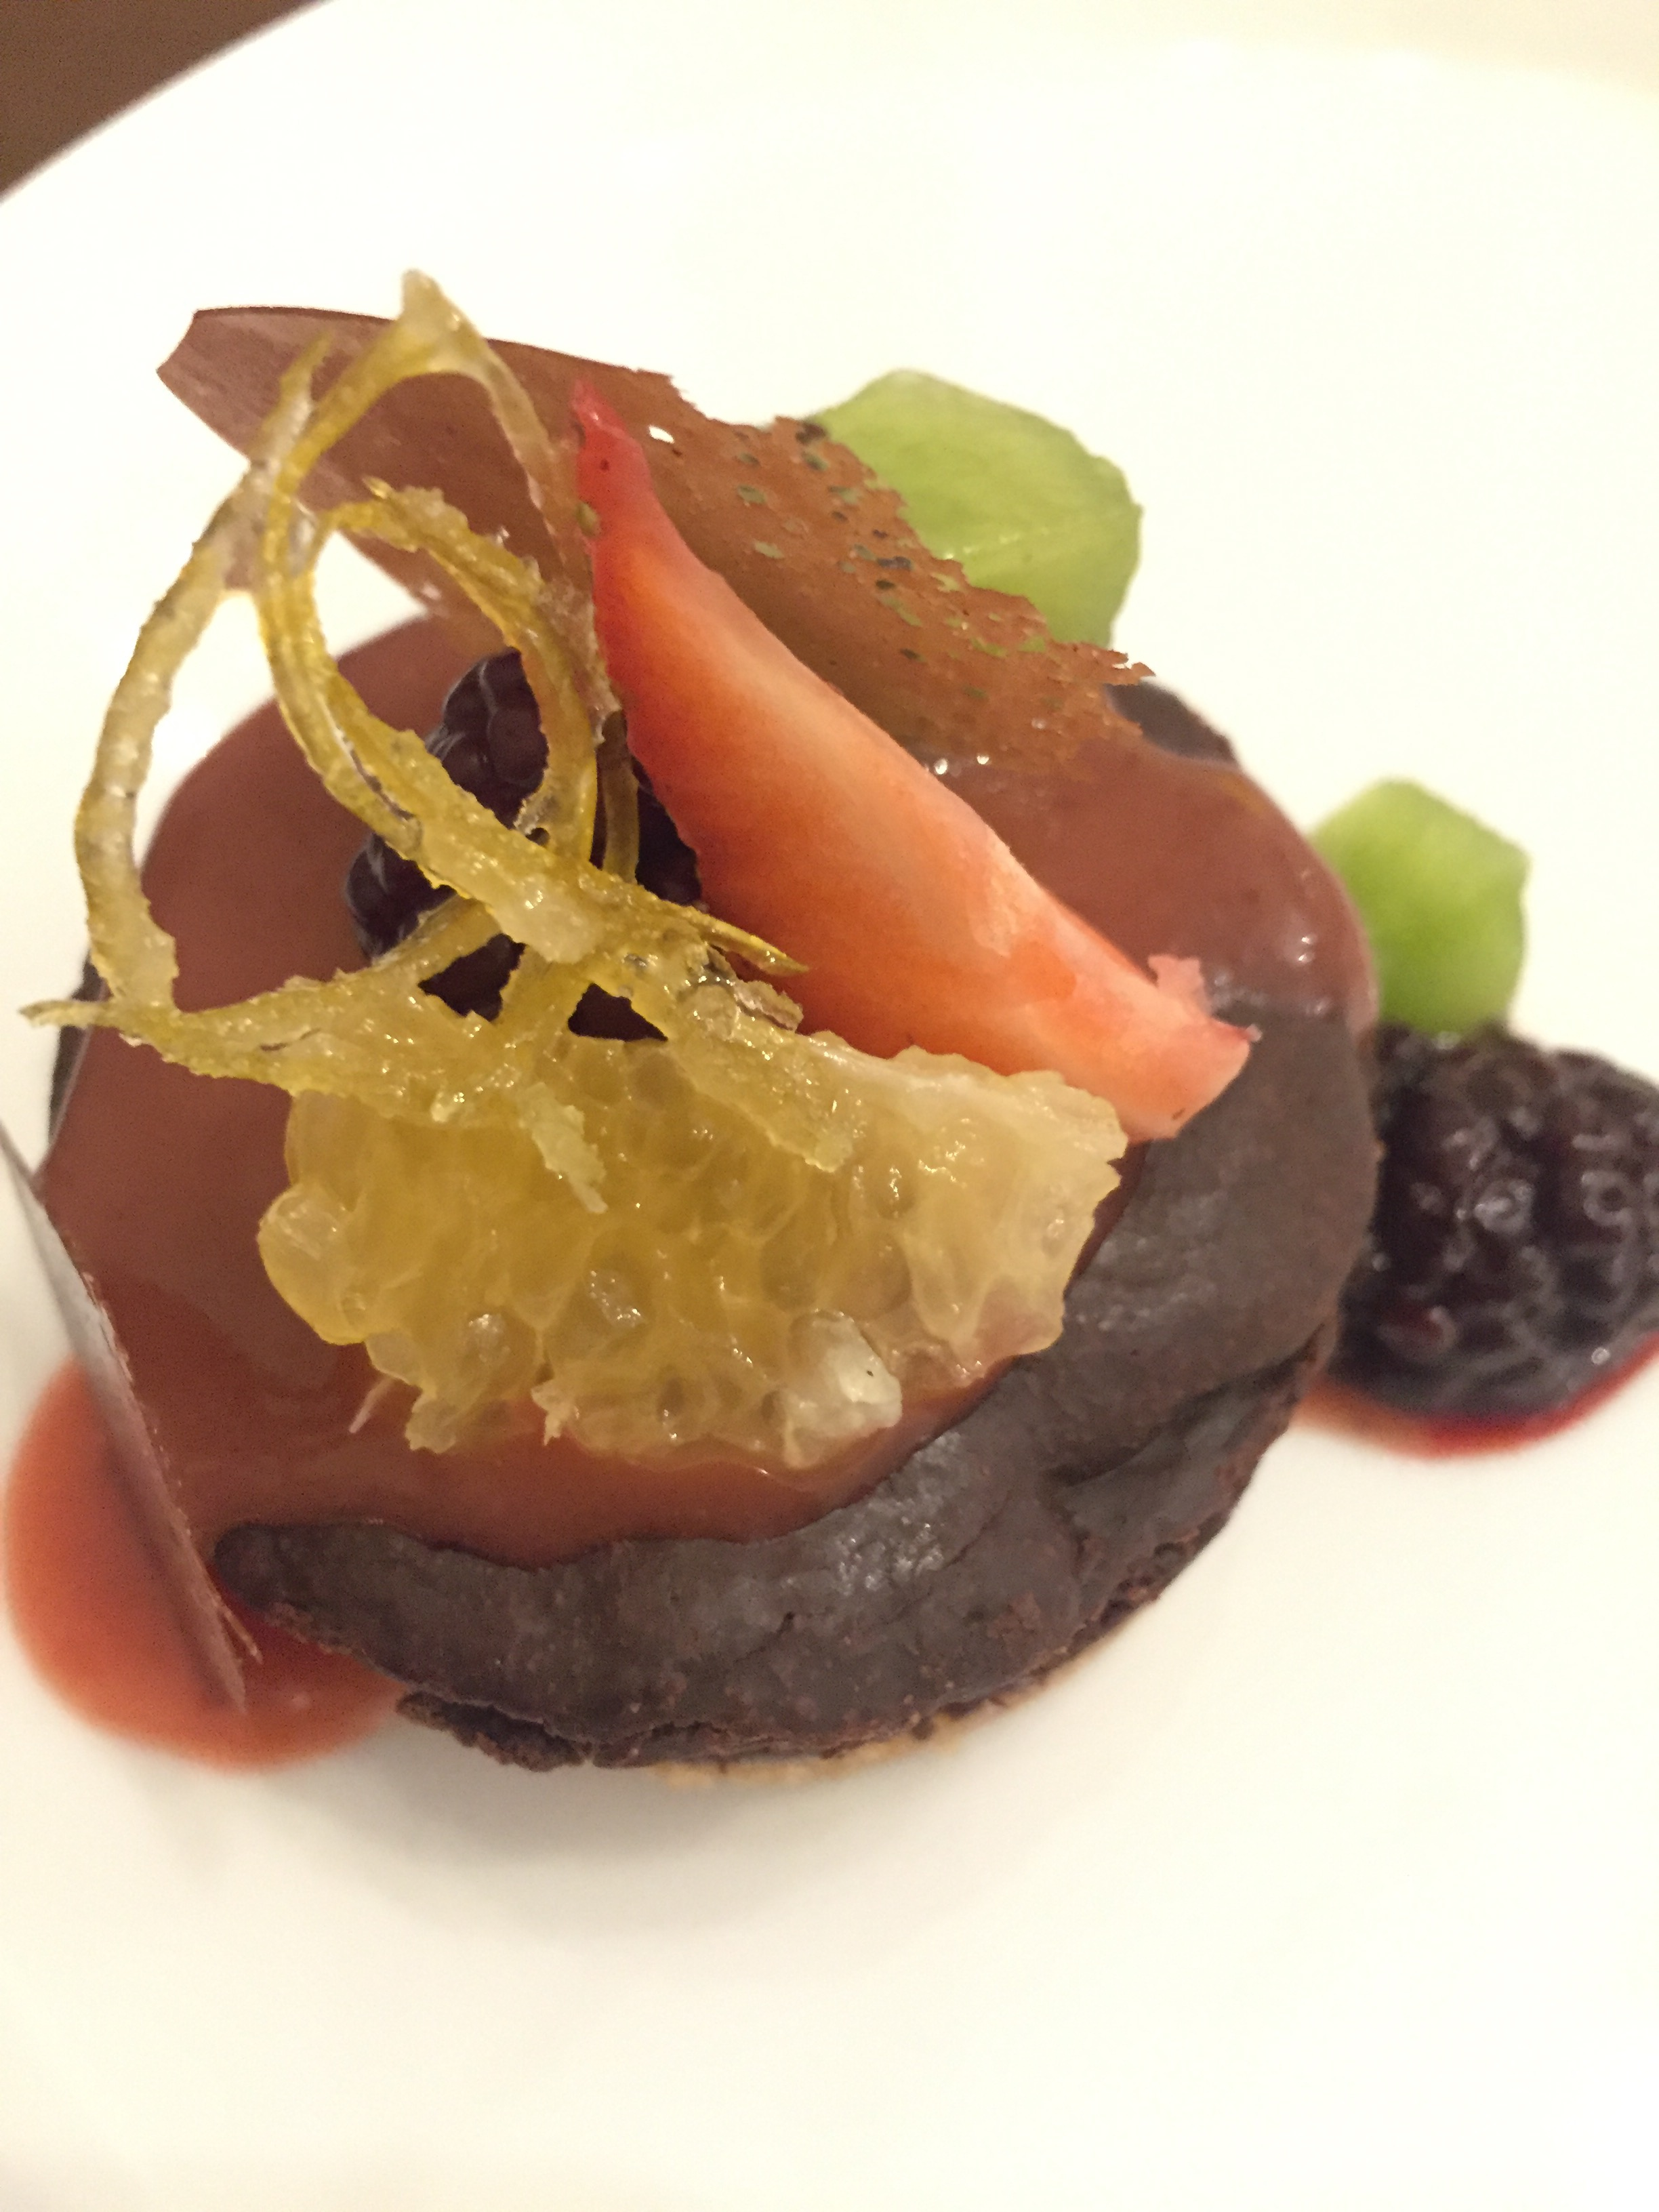 Organic Chocolate Tart | Haute Cuisine in La Paz, Bolivia at Ona Restaurant in Atix Hotel